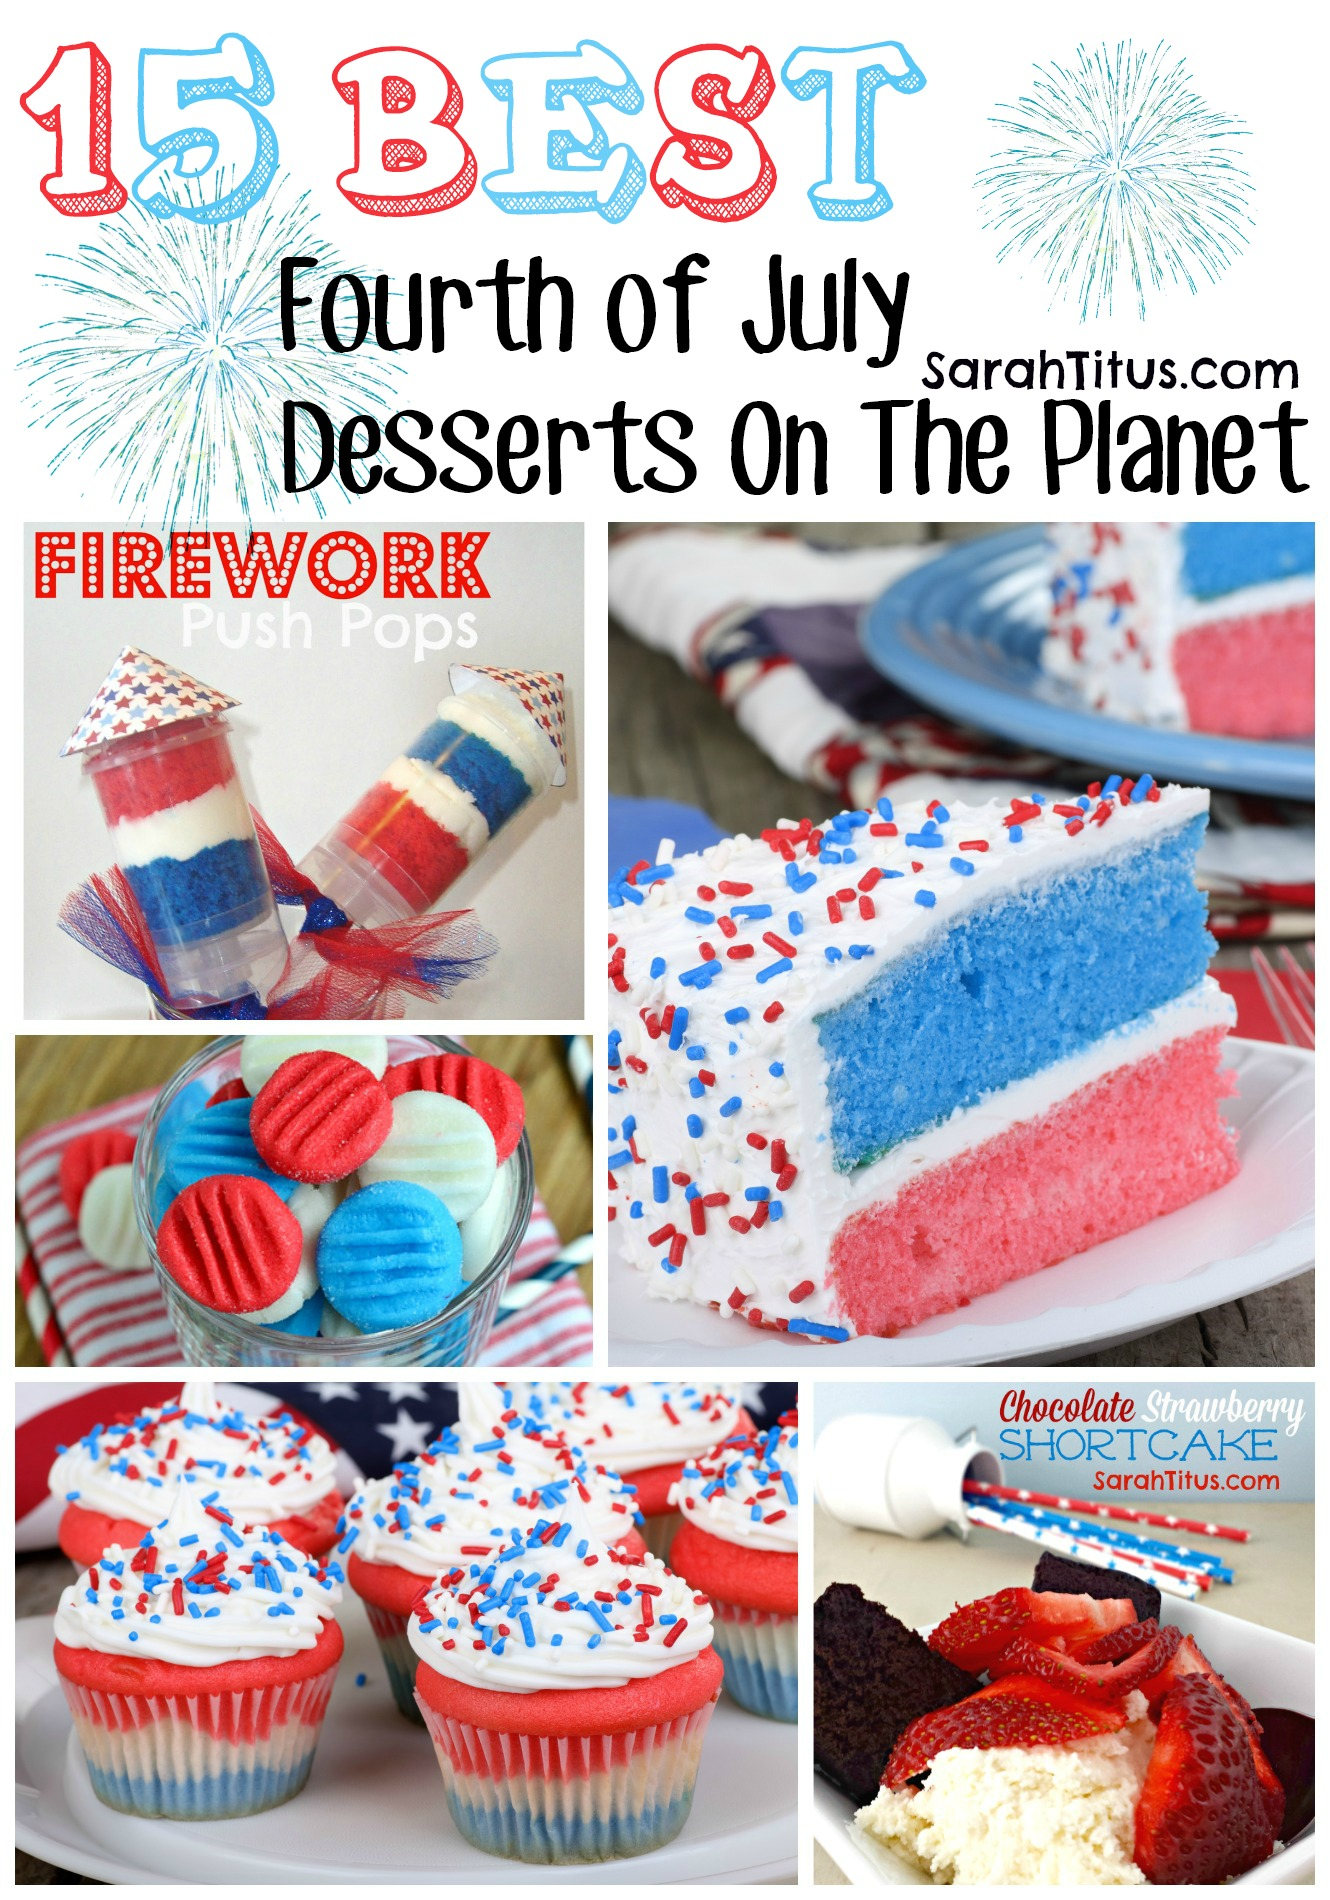 15 Best Fourth of July Desserts On The Planet